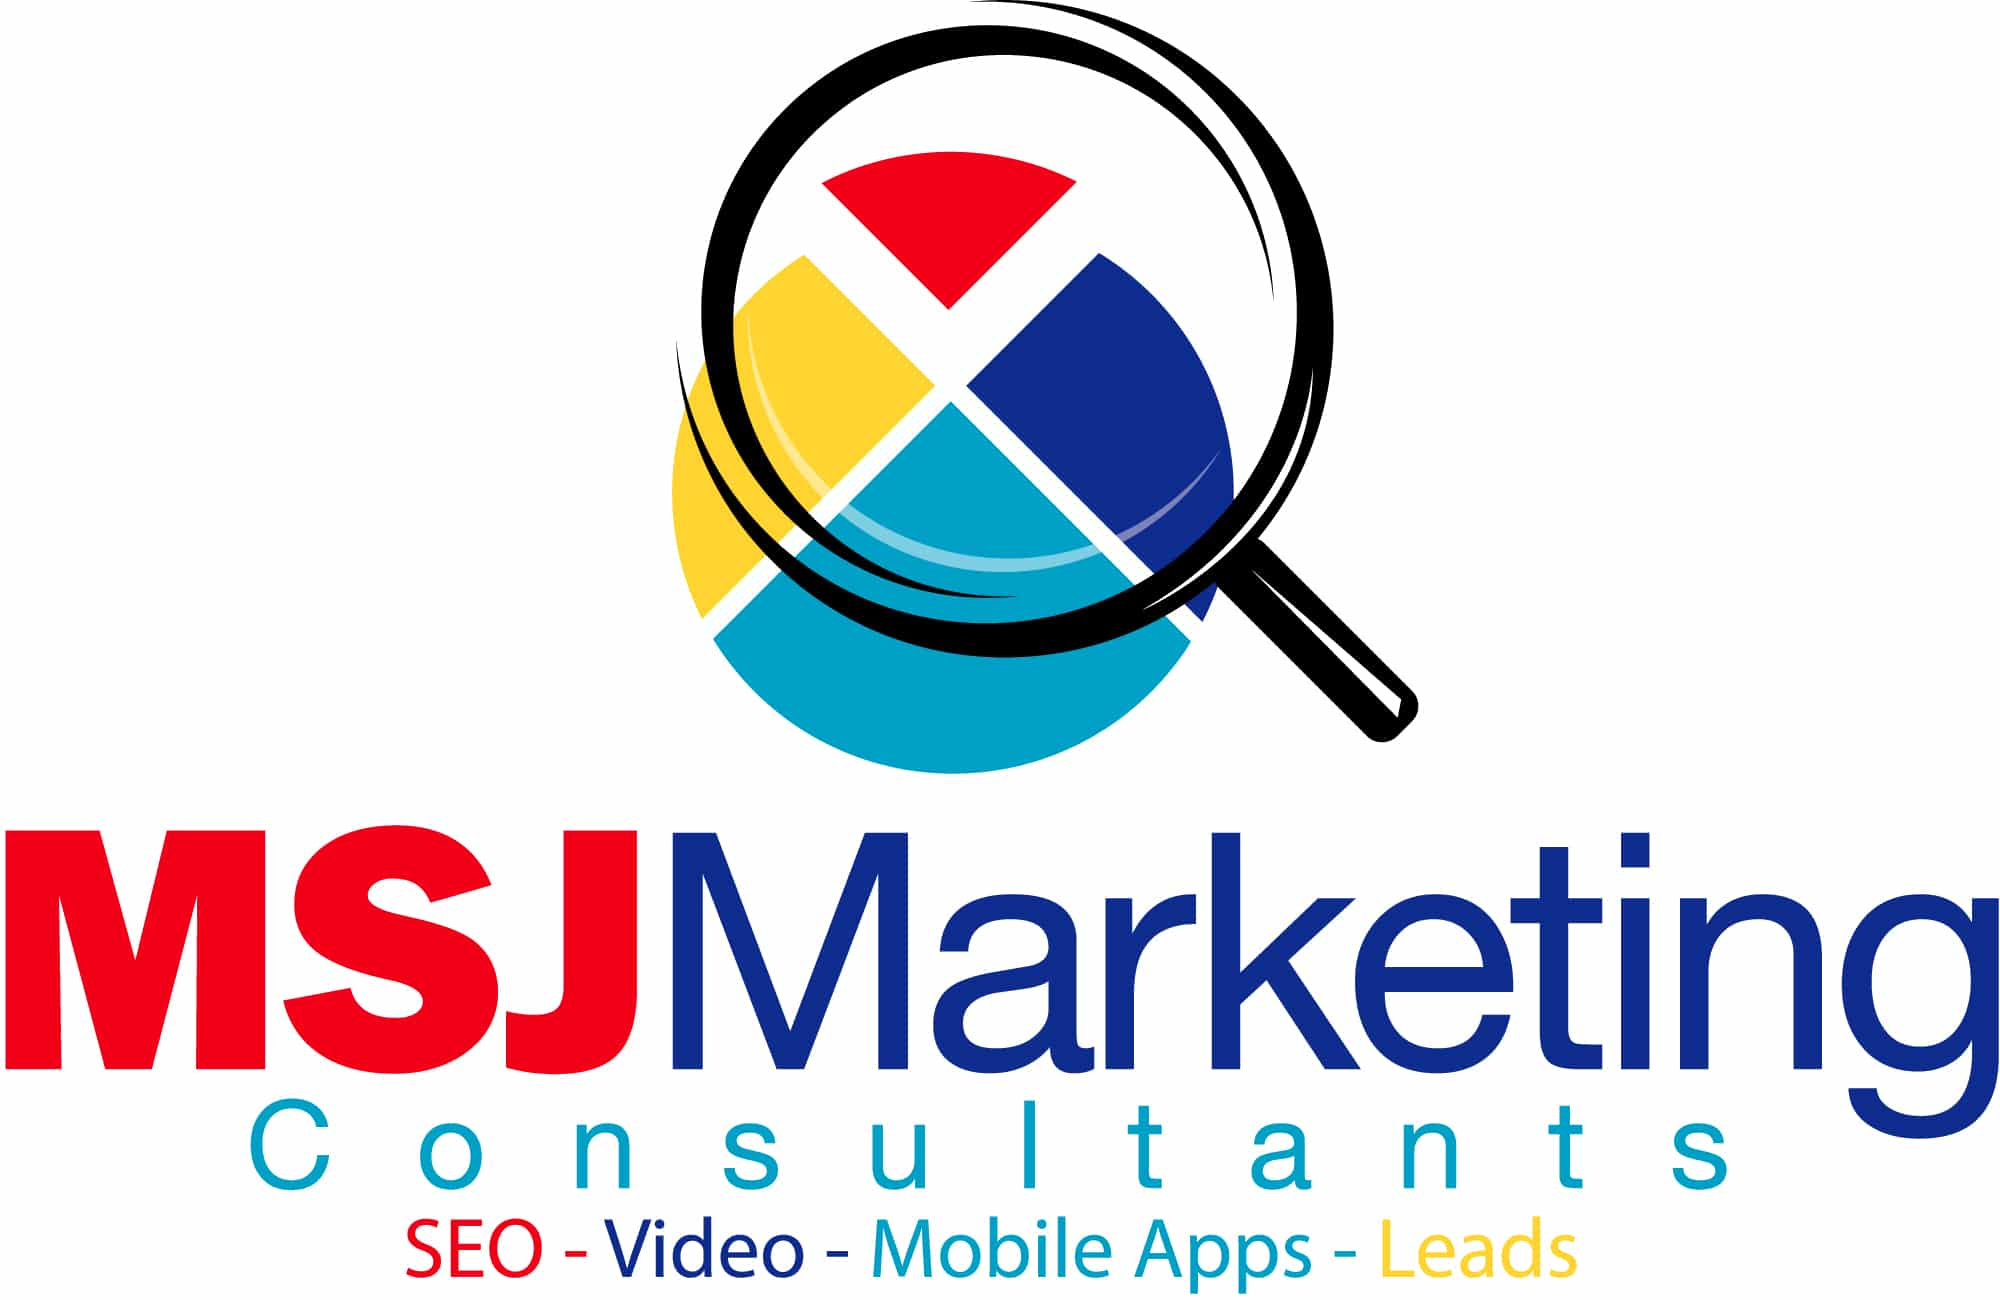 SEO Marketing Consultants | Video SEO and Marketing